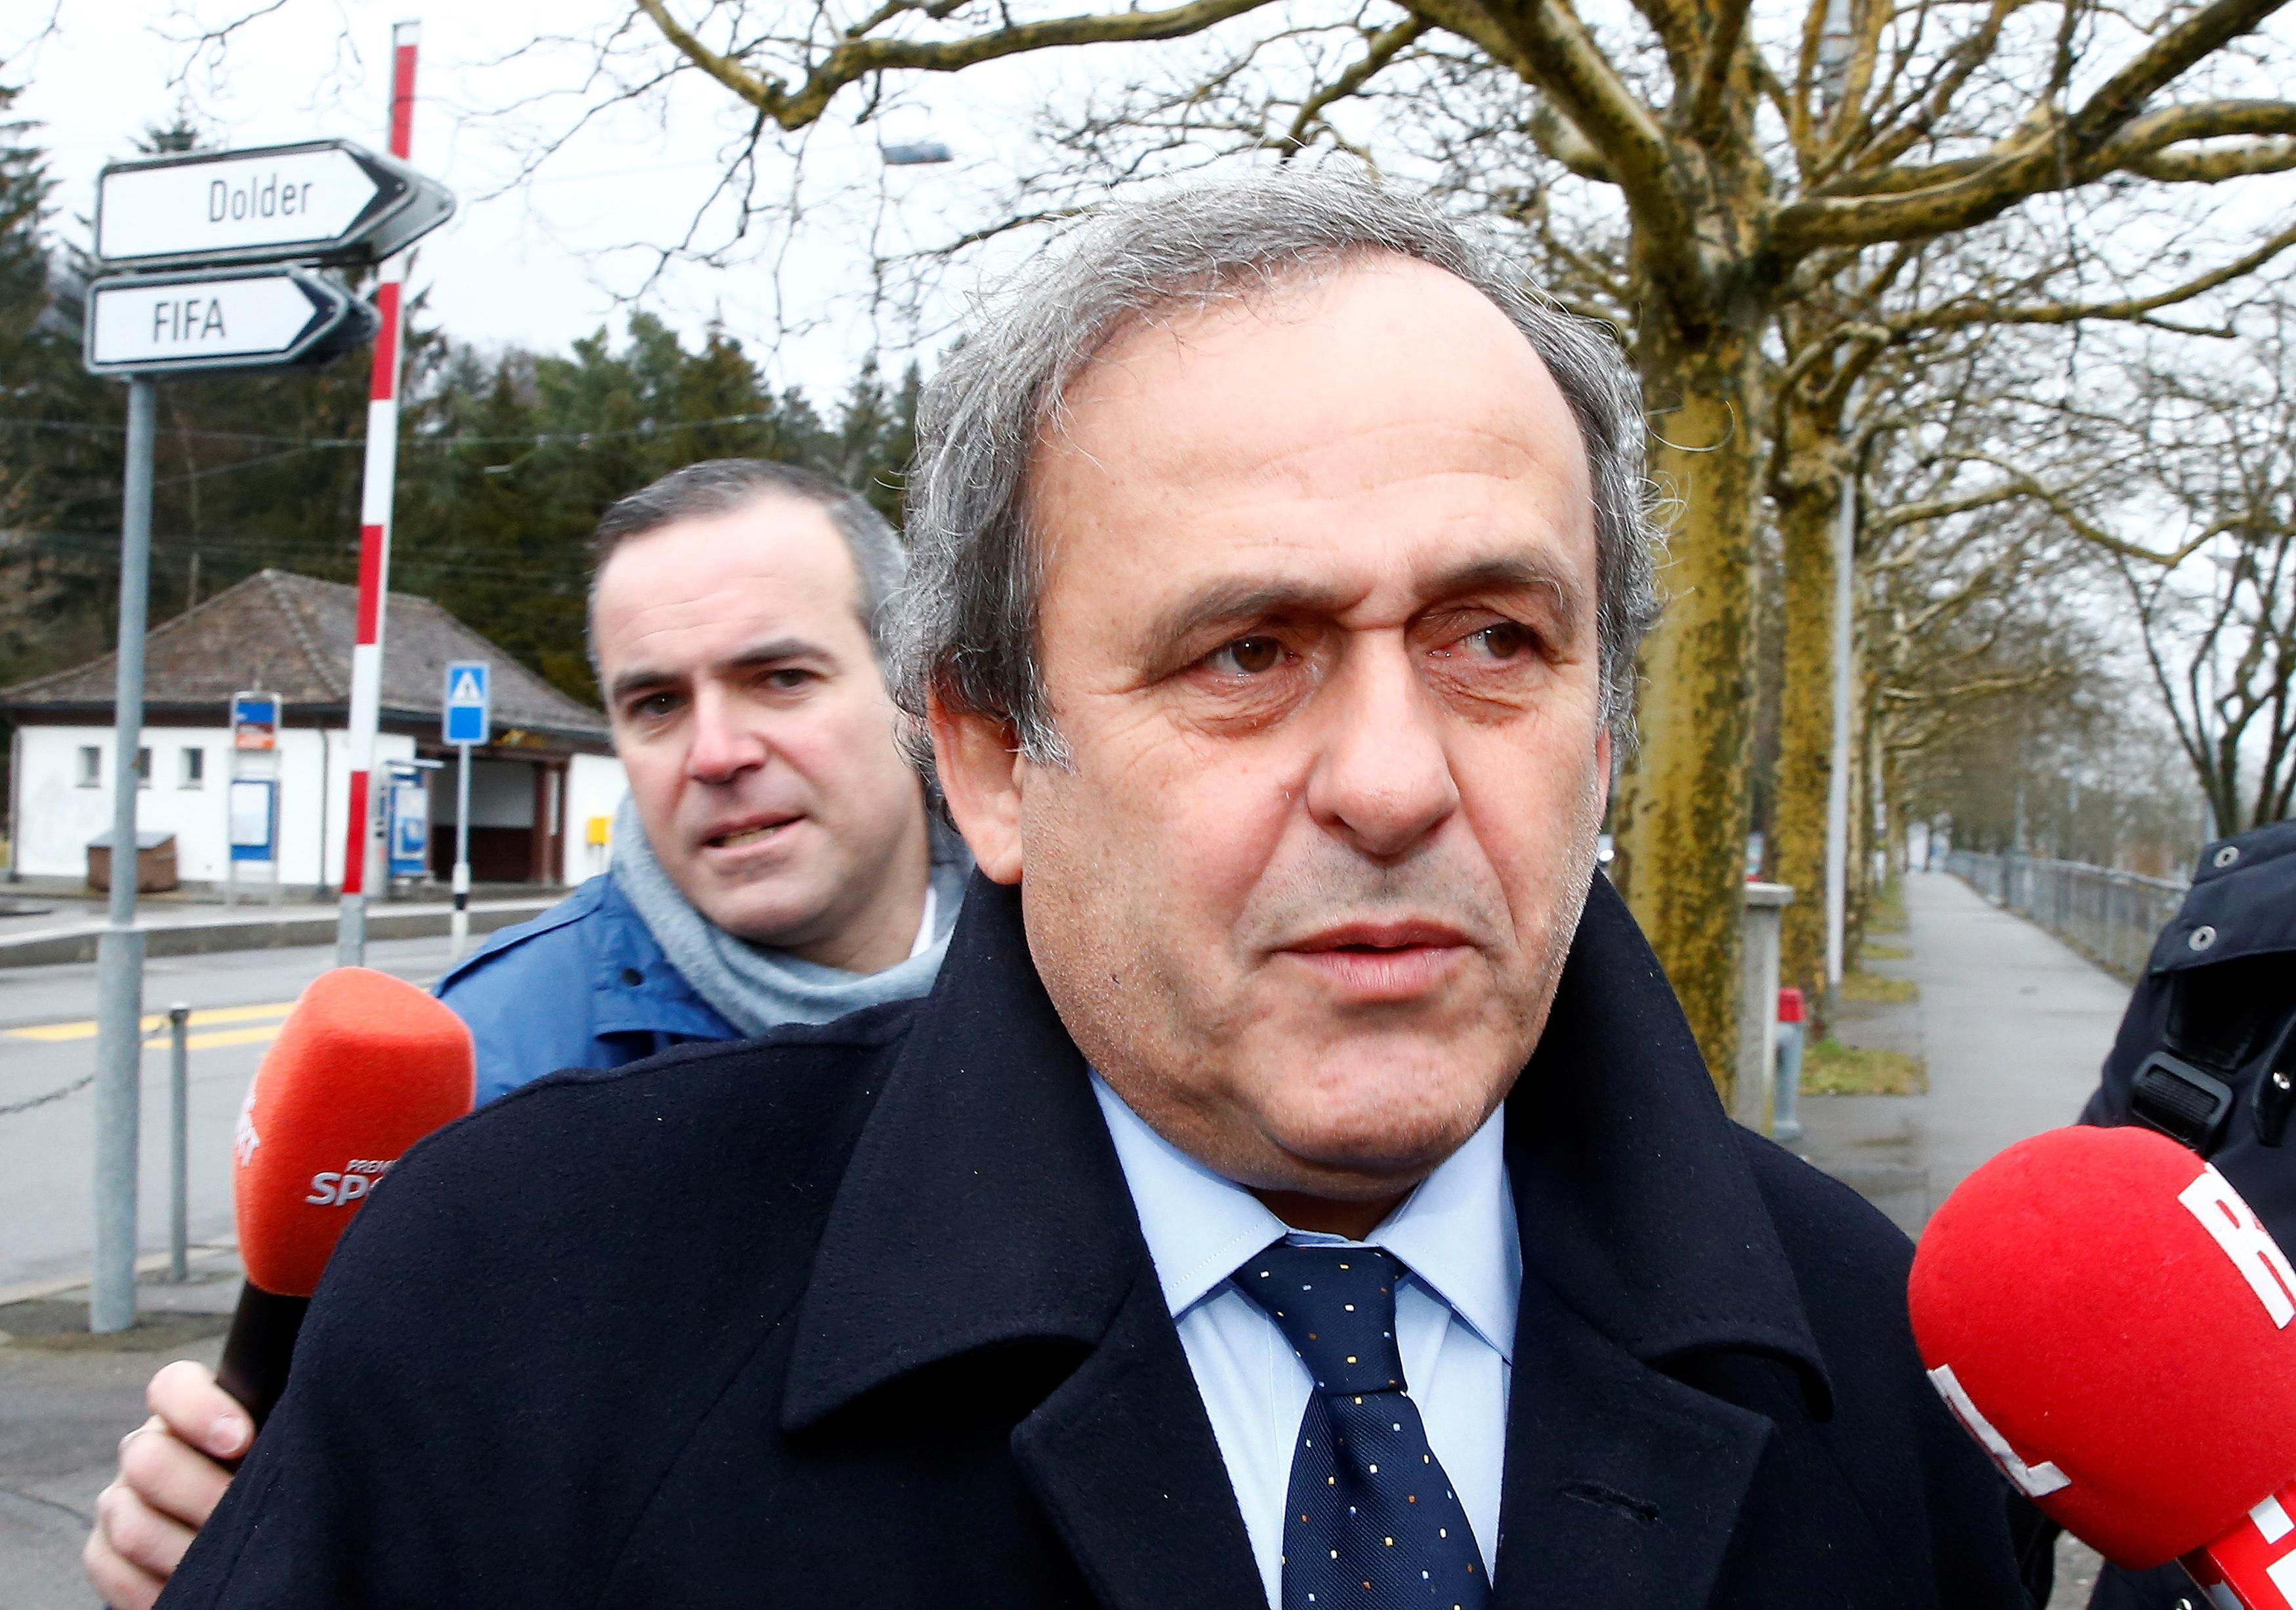 Former UEFA chief Platini questioned in Qatar World Cup probe - judicial source